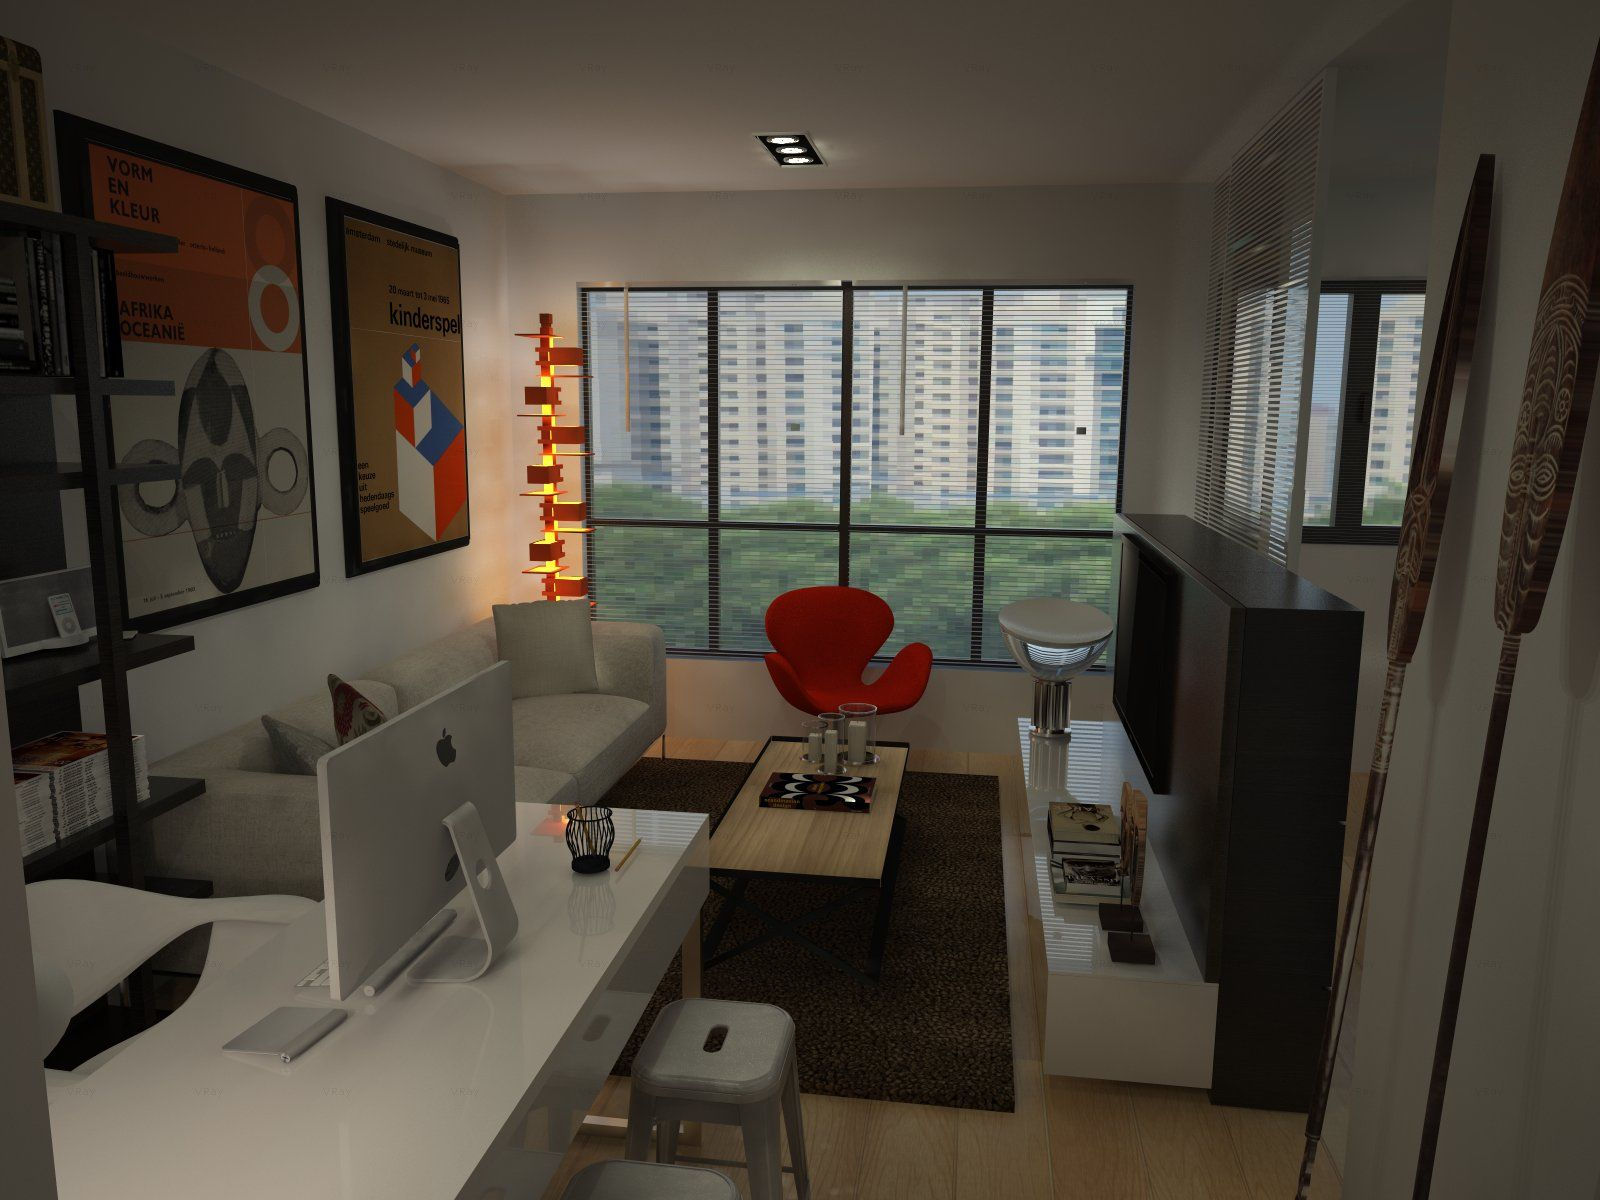 Hdb bto for singles 2 room 47sqm hdb apartment in sengkang rieverview walk 3d interior design Hdb home interior design ideas